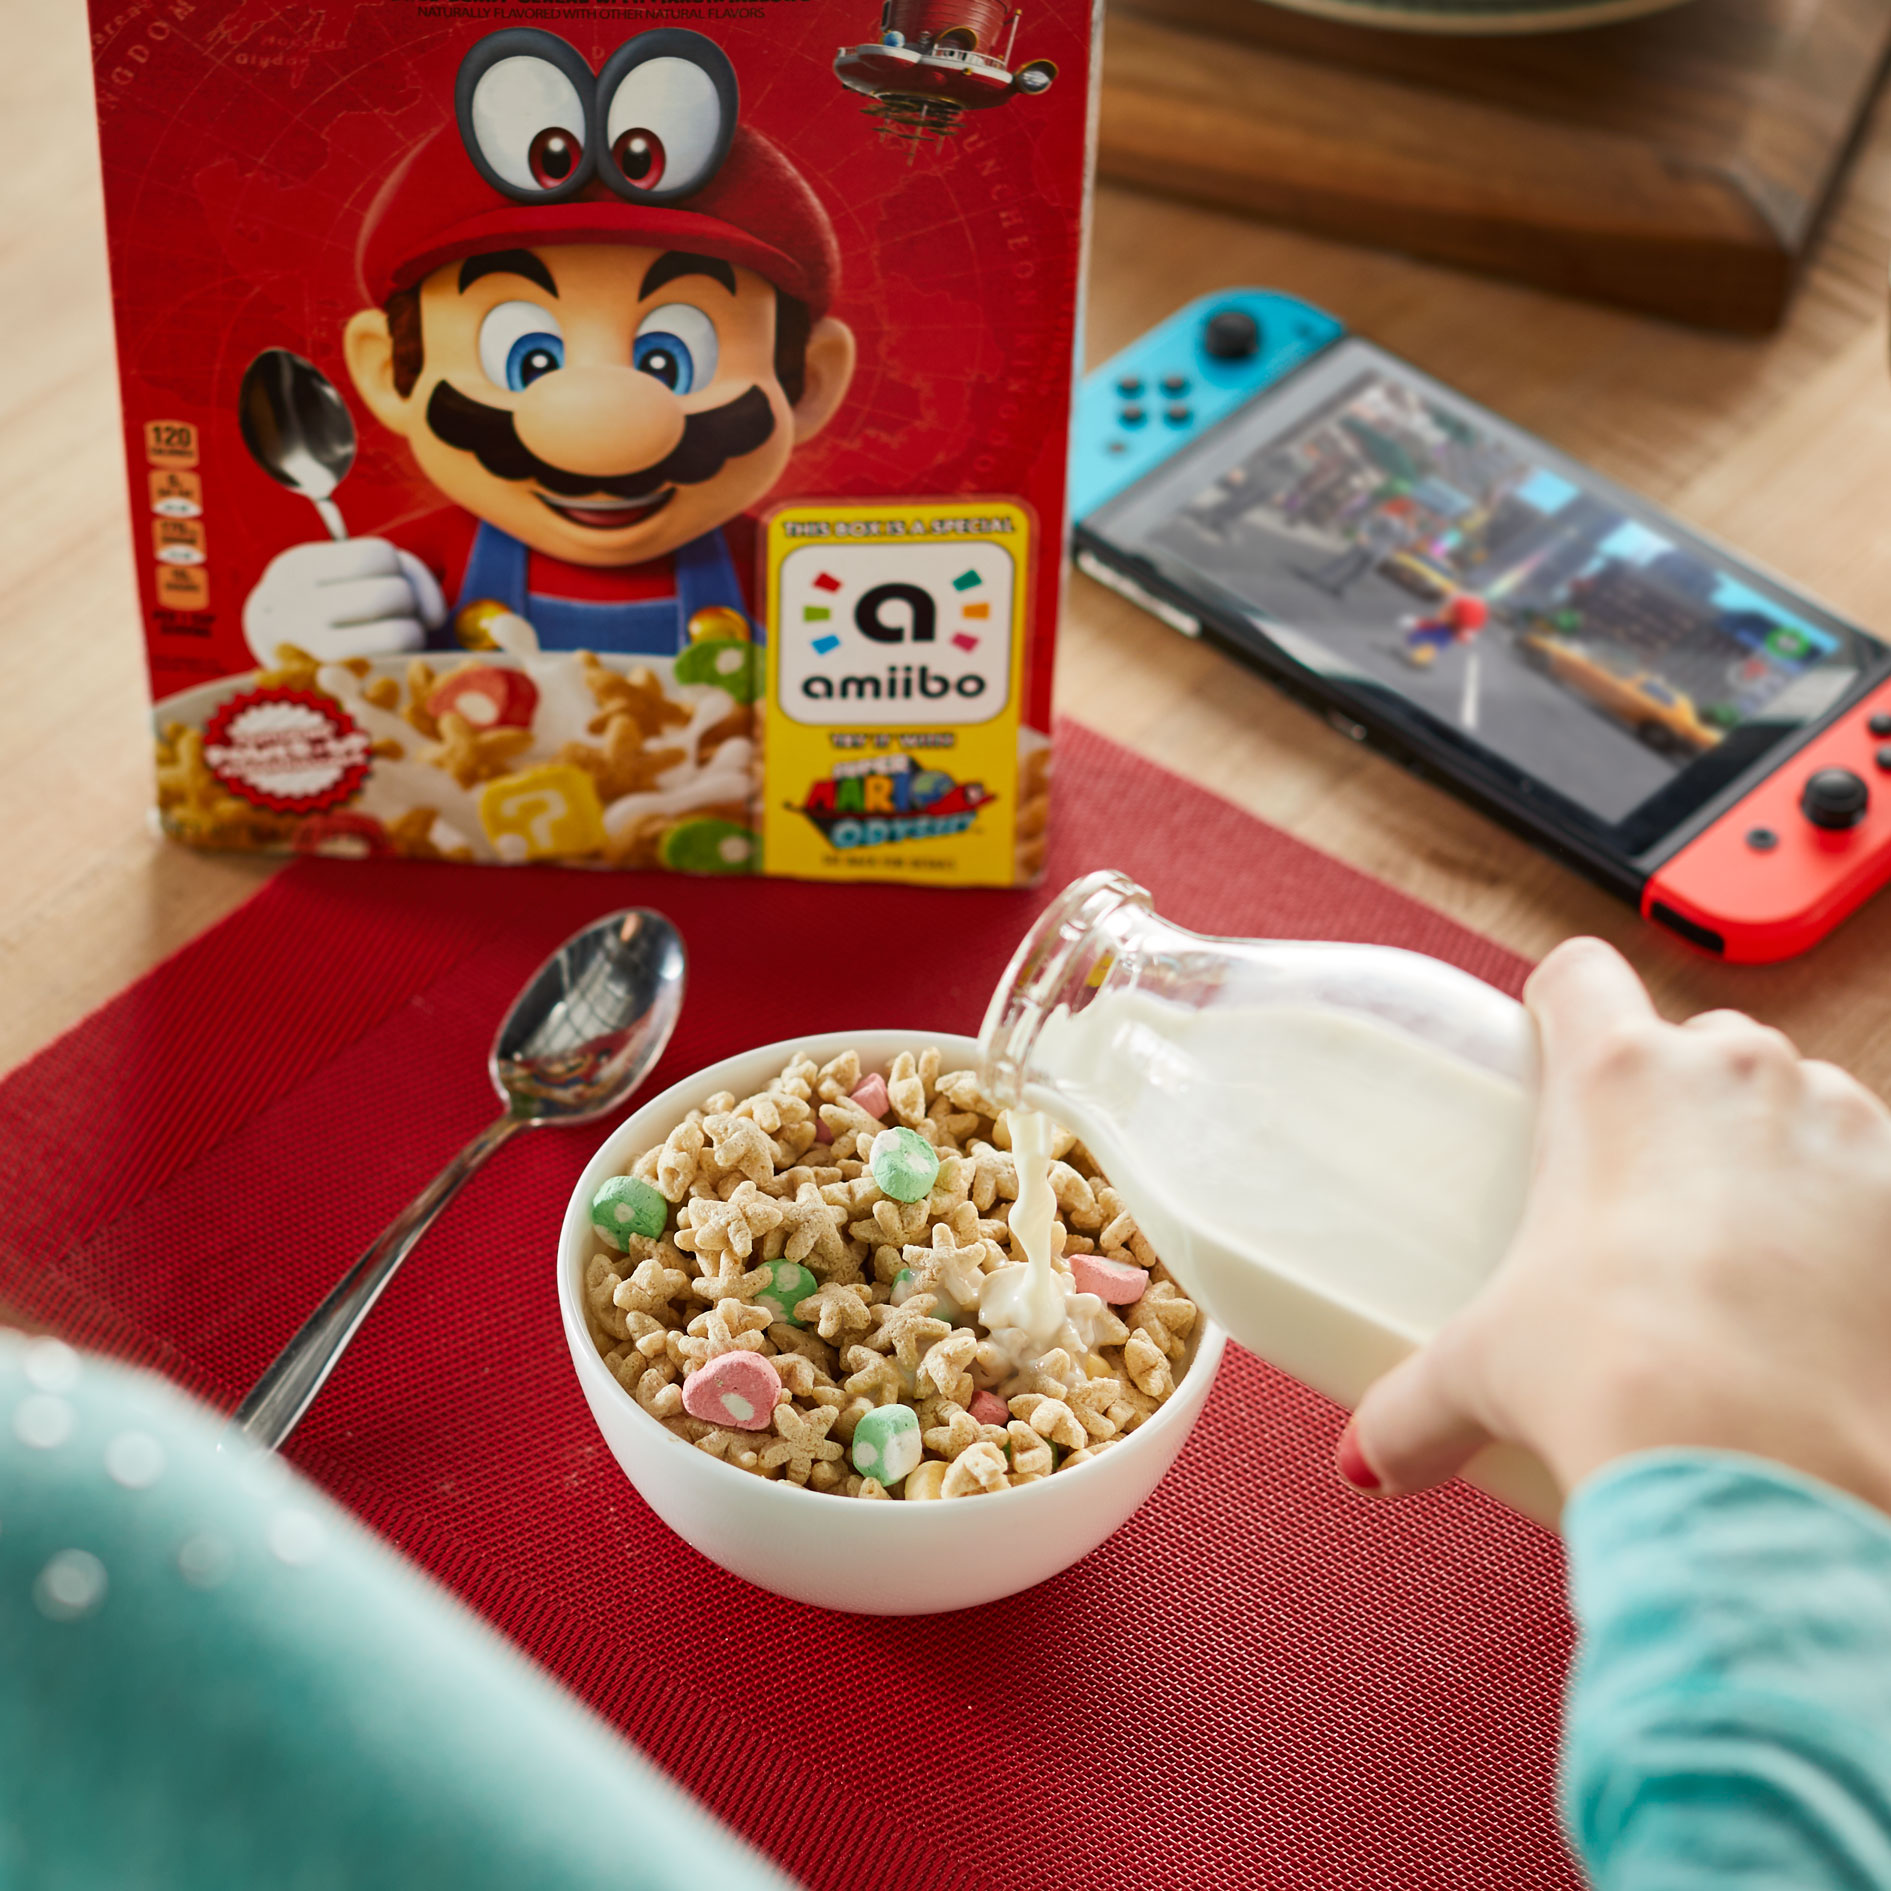 This Super Mario Cereal Box Is Probably The Largest Amiibo Coming Out